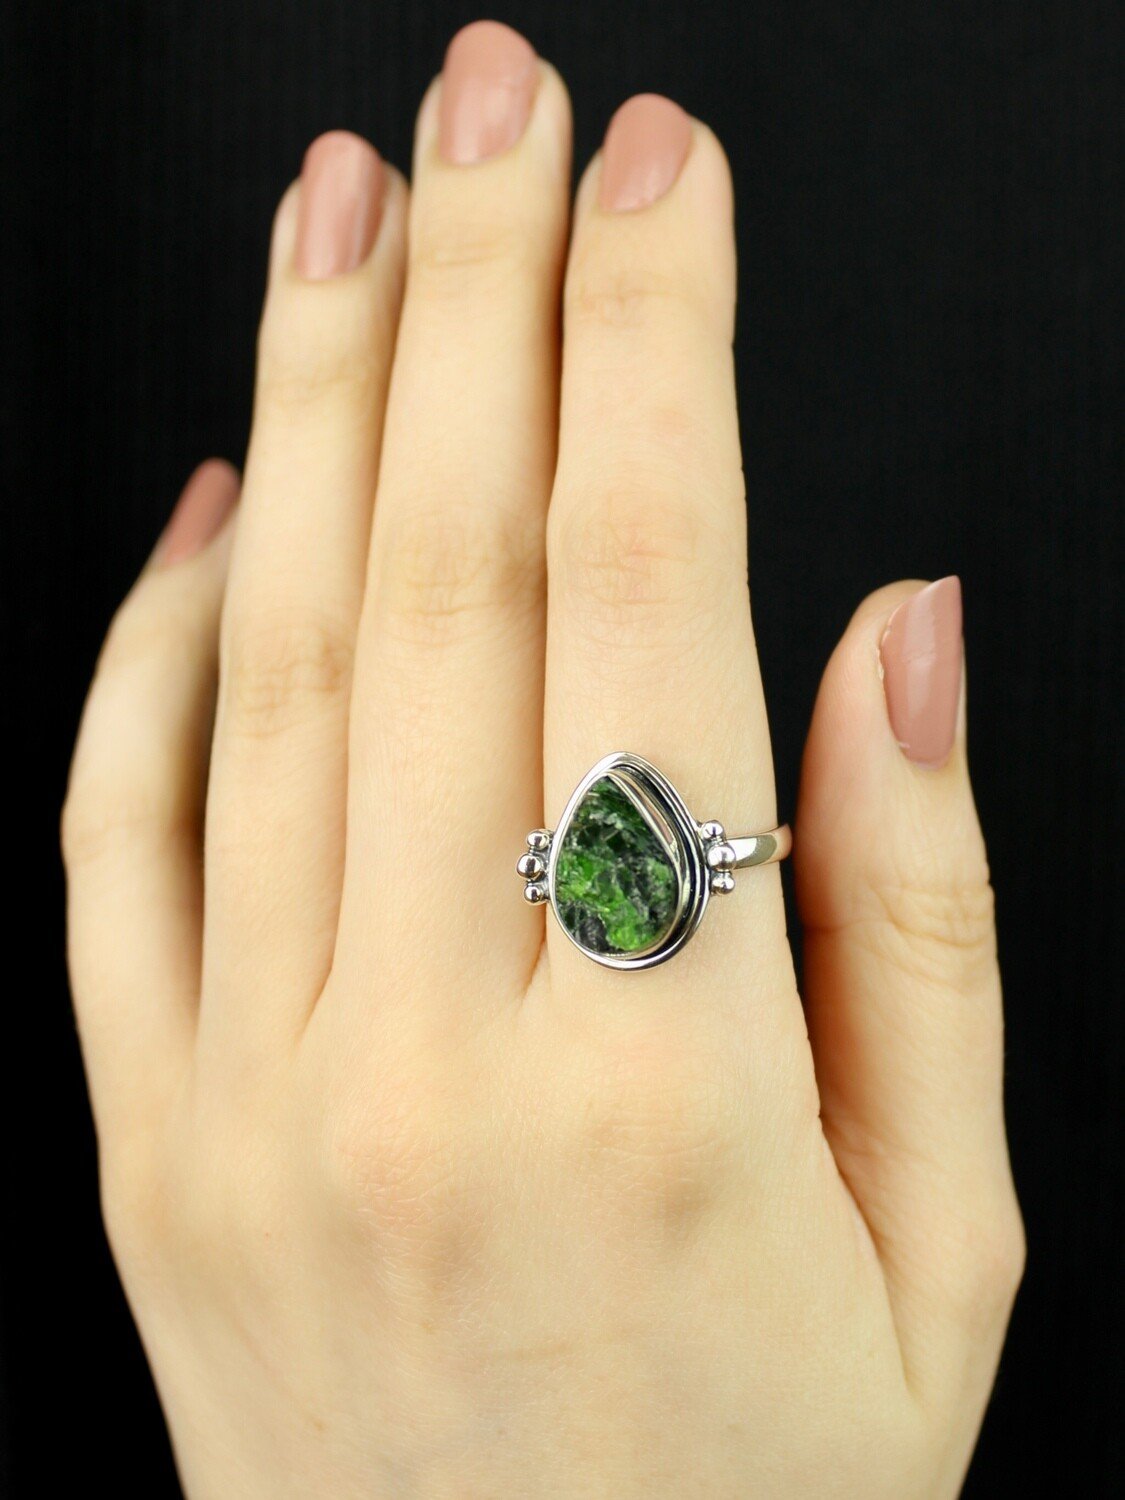 SIZE 10 - Sterling Silver Chrome Diopside Ring - RIG10106